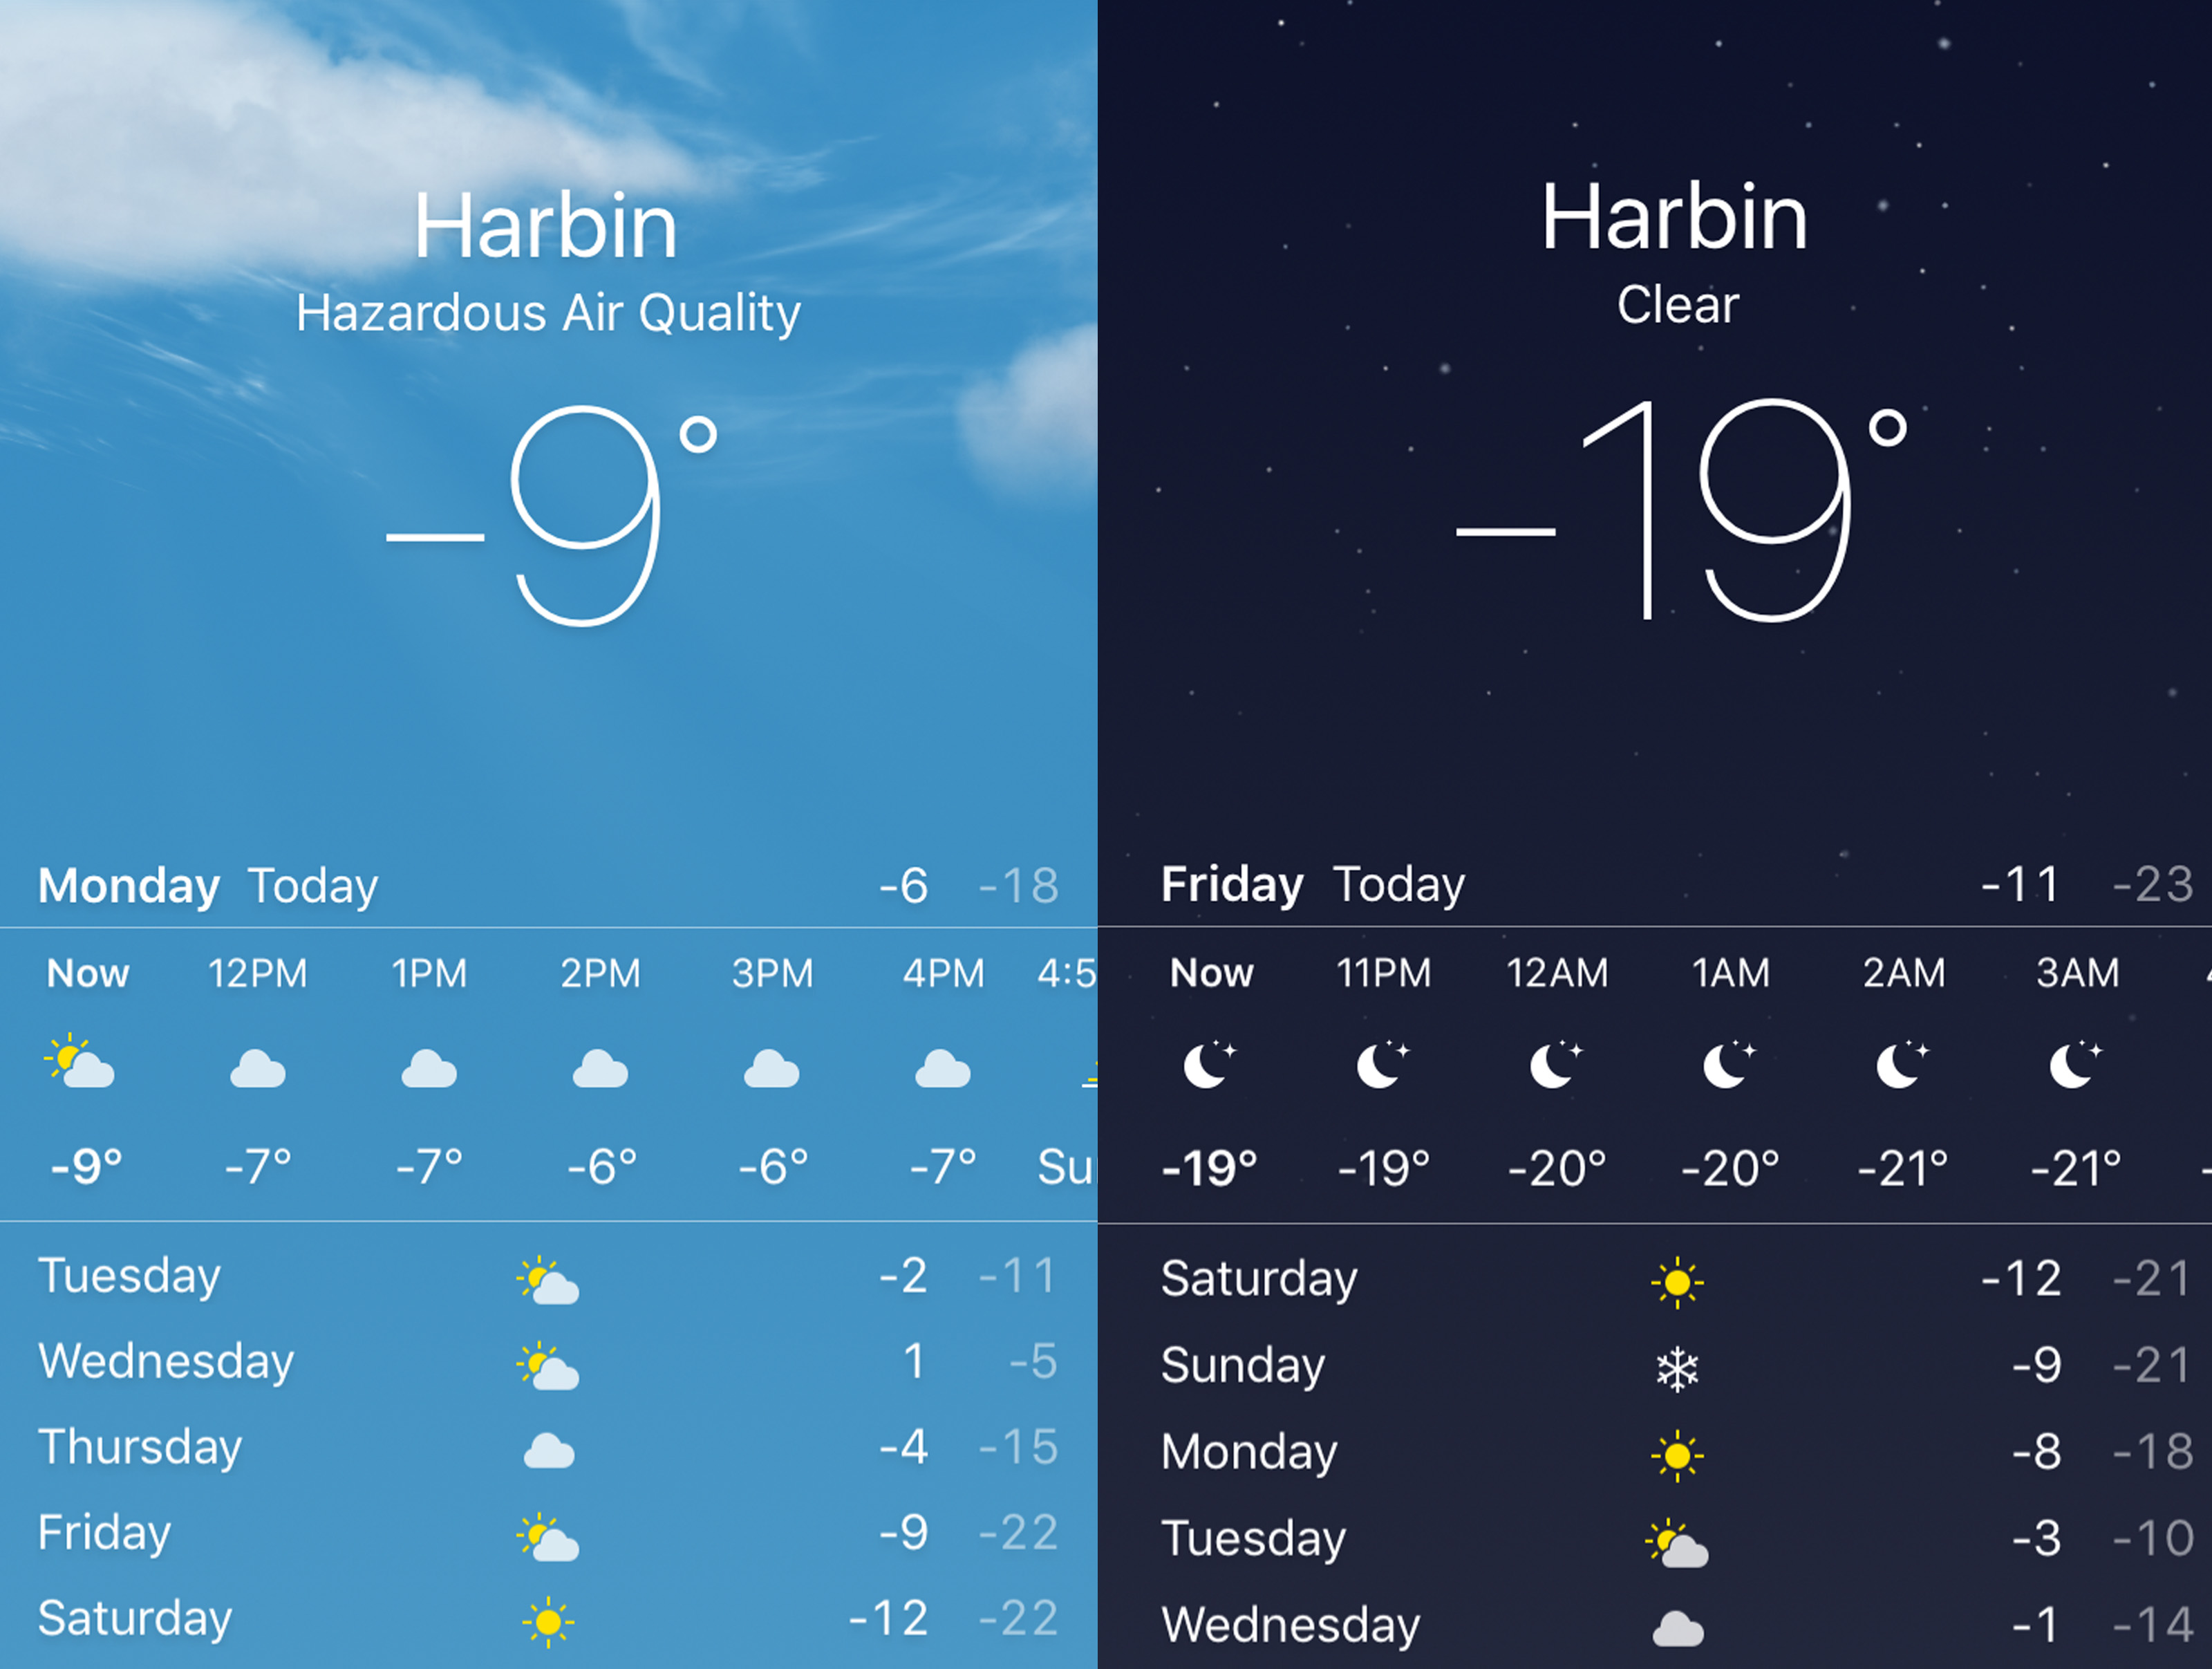 Harbin's Weather